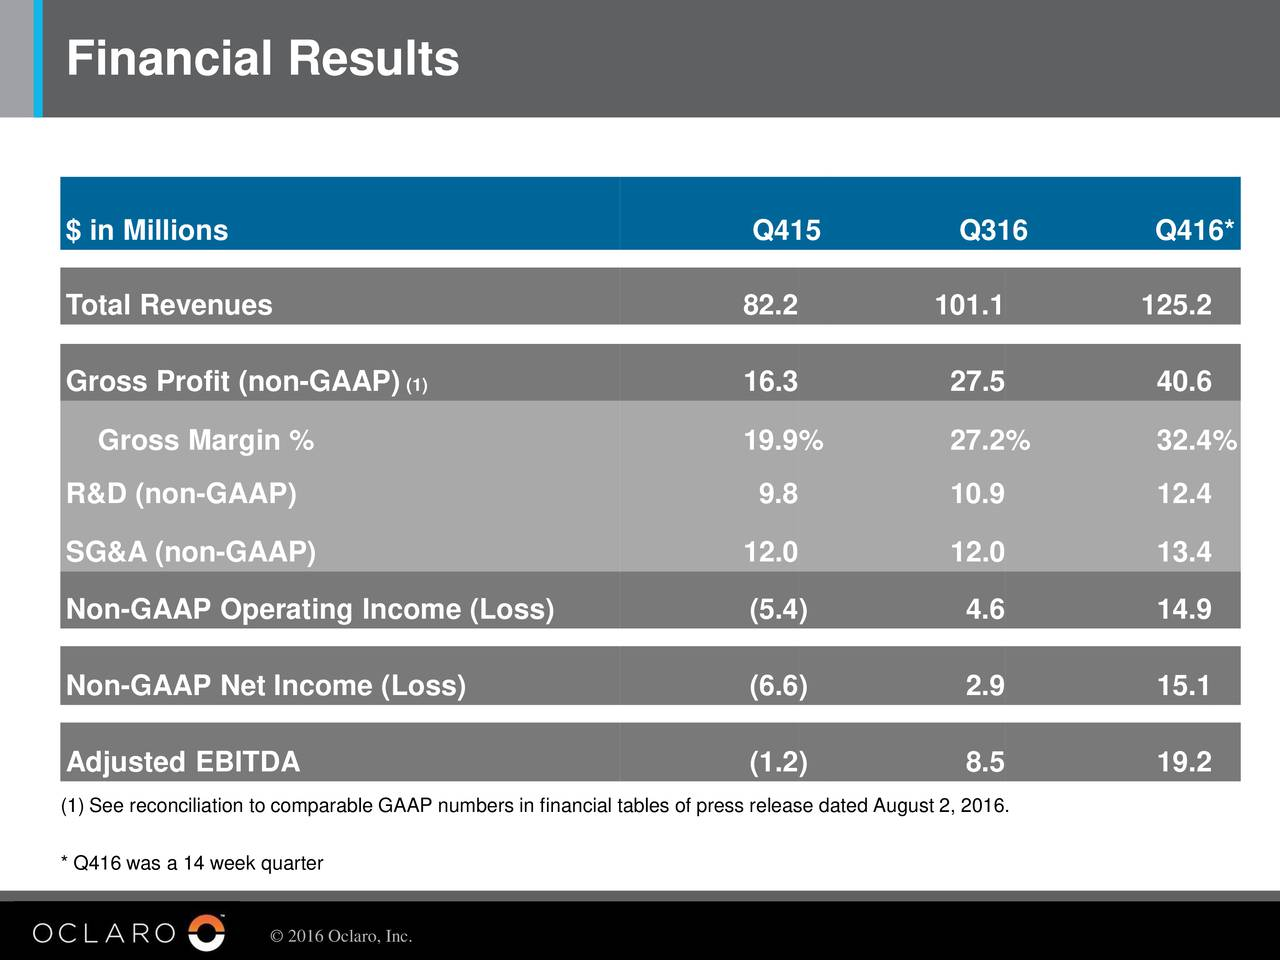 $ in Millions Q415 Q316 Q416* Total Revenues 82.2 101.1 125.2 Gross Profit (non-GAAP) (1) 16.3 27.5 40.6 Gross Margin % 19.9% 27.2% 32.4% R&D (non-GAAP) 9.8 10.9 12.4 SG&A (non-GAAP) 12.0 12.0 13.4 Non-GAAP Operating Income (Loss) (5.4) 4.6 14.9 Non-GAAP Net Income (Loss) (6.6) 2.9 15.1 Adjusted EBITDA (1.2) 8.5 19.2 (1) See reconciliation to comparable GAAP numbers in financial tables of press release dated August 2, 2016. * Q416 was a 14 week quarter 2016 Oclaro, Inc.